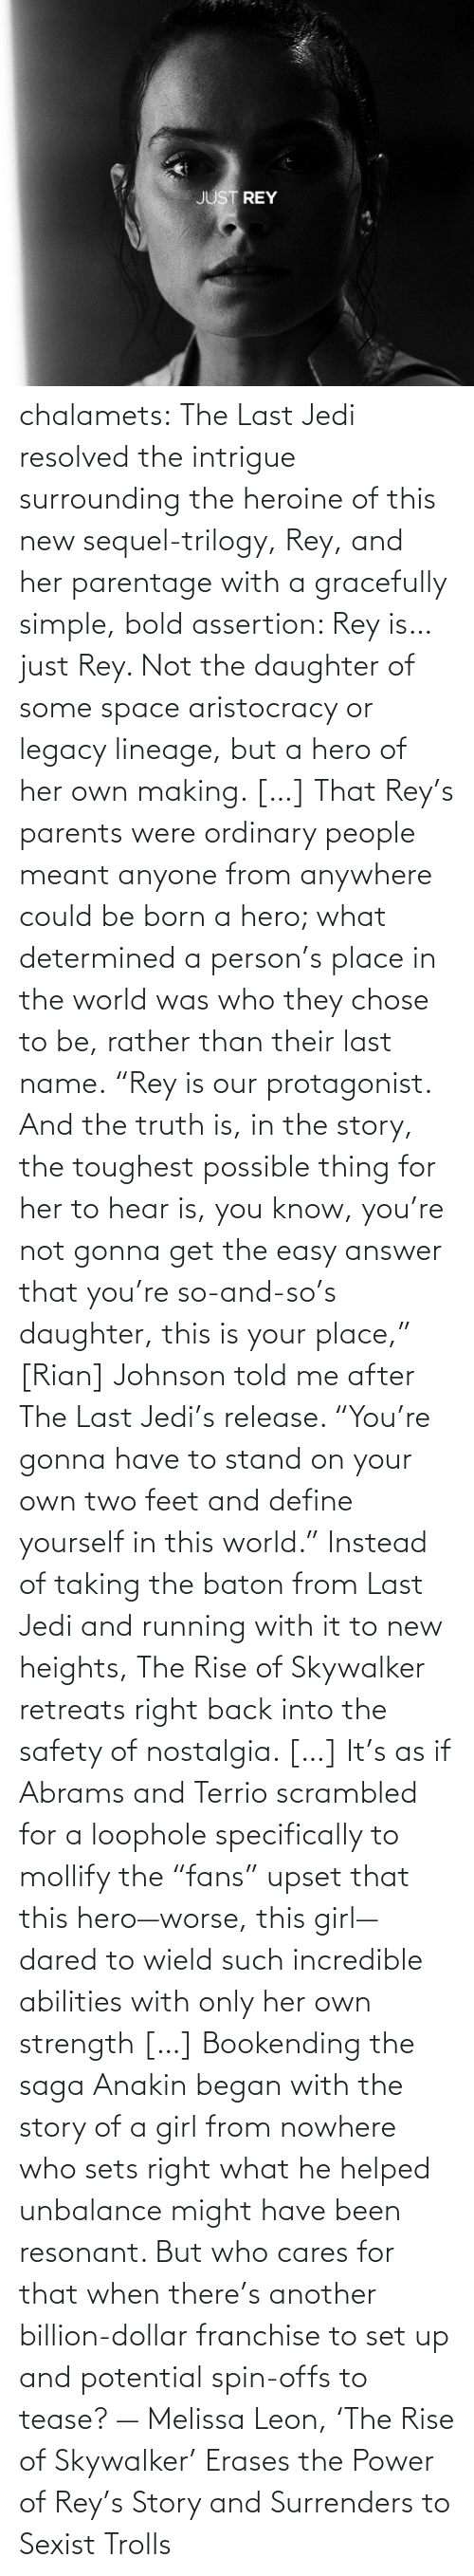 "Girl: chalamets:  The Last Jedi resolved the intrigue surrounding the heroine of this new sequel-trilogy, Rey, and her parentage with a gracefully simple, bold assertion: Rey is… just Rey. Not the daughter of some space aristocracy or legacy lineage, but a hero of her own making. […] That Rey's parents were ordinary people meant anyone from anywhere could be born a hero; what determined a person's place in the world was who they chose to be, rather than their last name. ""Rey is our protagonist. And the truth is, in the story, the toughest possible thing for her to hear is, you know, you're not gonna get the easy answer that you're so-and-so's daughter, this is your place,"" [Rian] Johnson told me after The Last Jedi's release. ""You're gonna have to stand on your own two feet and define yourself in this world."" Instead of taking the baton from Last Jedi and running with it to new heights, The Rise of Skywalker retreats right back into the safety of nostalgia. […] It's as if Abrams and Terrio scrambled for a loophole specifically to mollify the ""fans"" upset that this hero—worse, this girl—dared to wield such incredible abilities with only her own strength […] Bookending the saga Anakin began with the story of a girl from nowhere who sets right what he helped unbalance might have been resonant. But who cares for that when there's another billion-dollar franchise to set up and potential spin-offs to tease? — Melissa Leon, 'The Rise of Skywalker' Erases the Power of Rey's Story and Surrenders to Sexist Trolls"